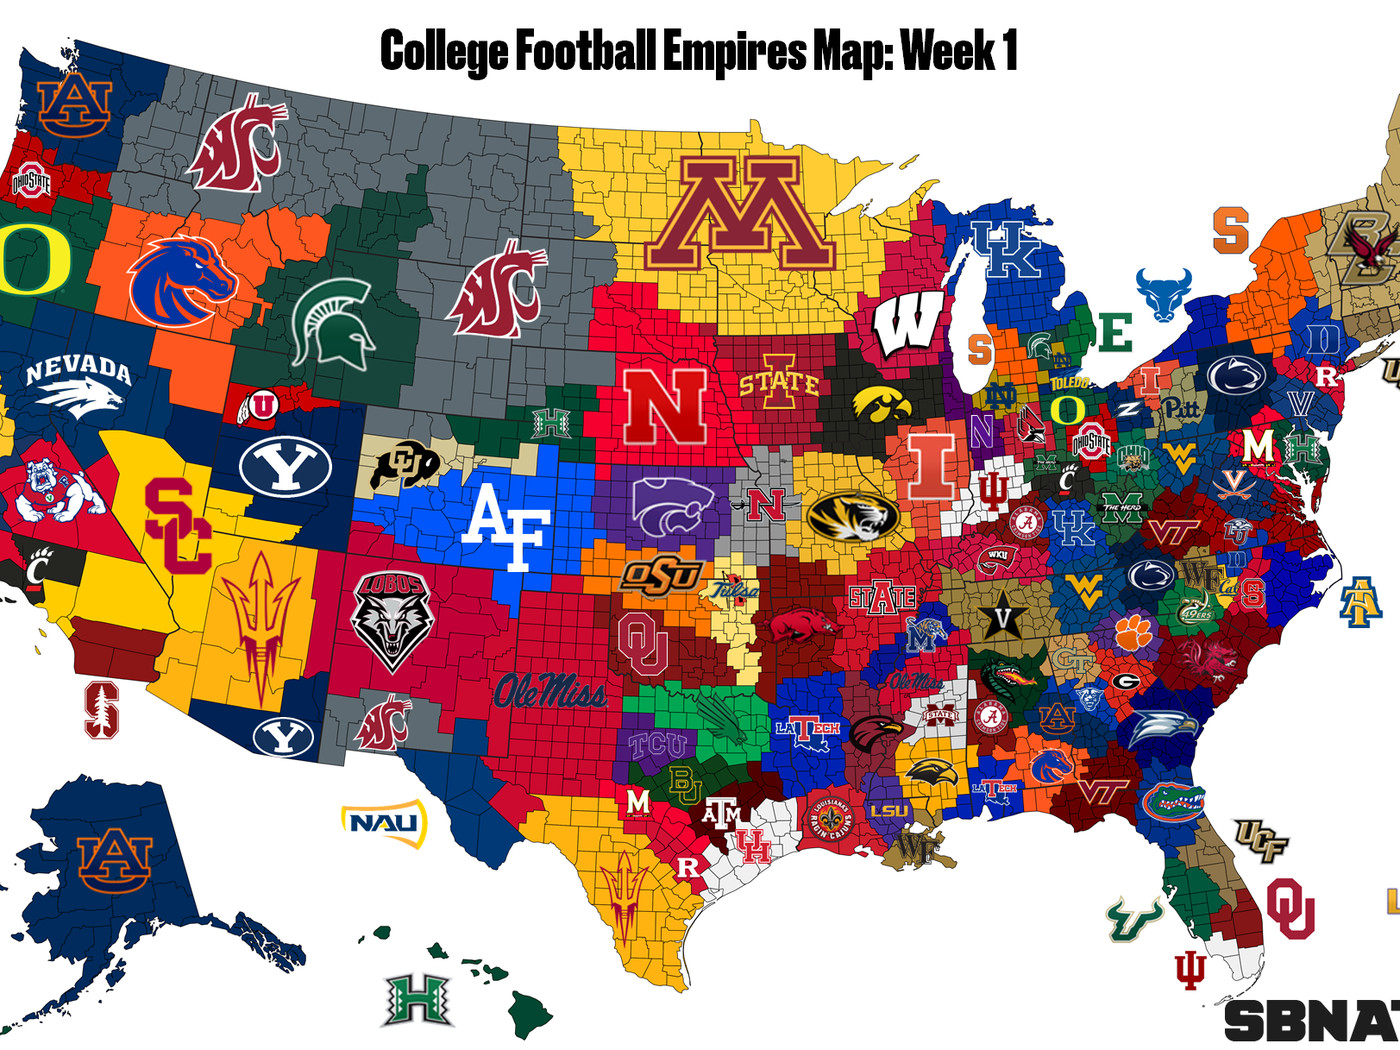 2018 College Football Empires Map Week 1 Sbnation Com